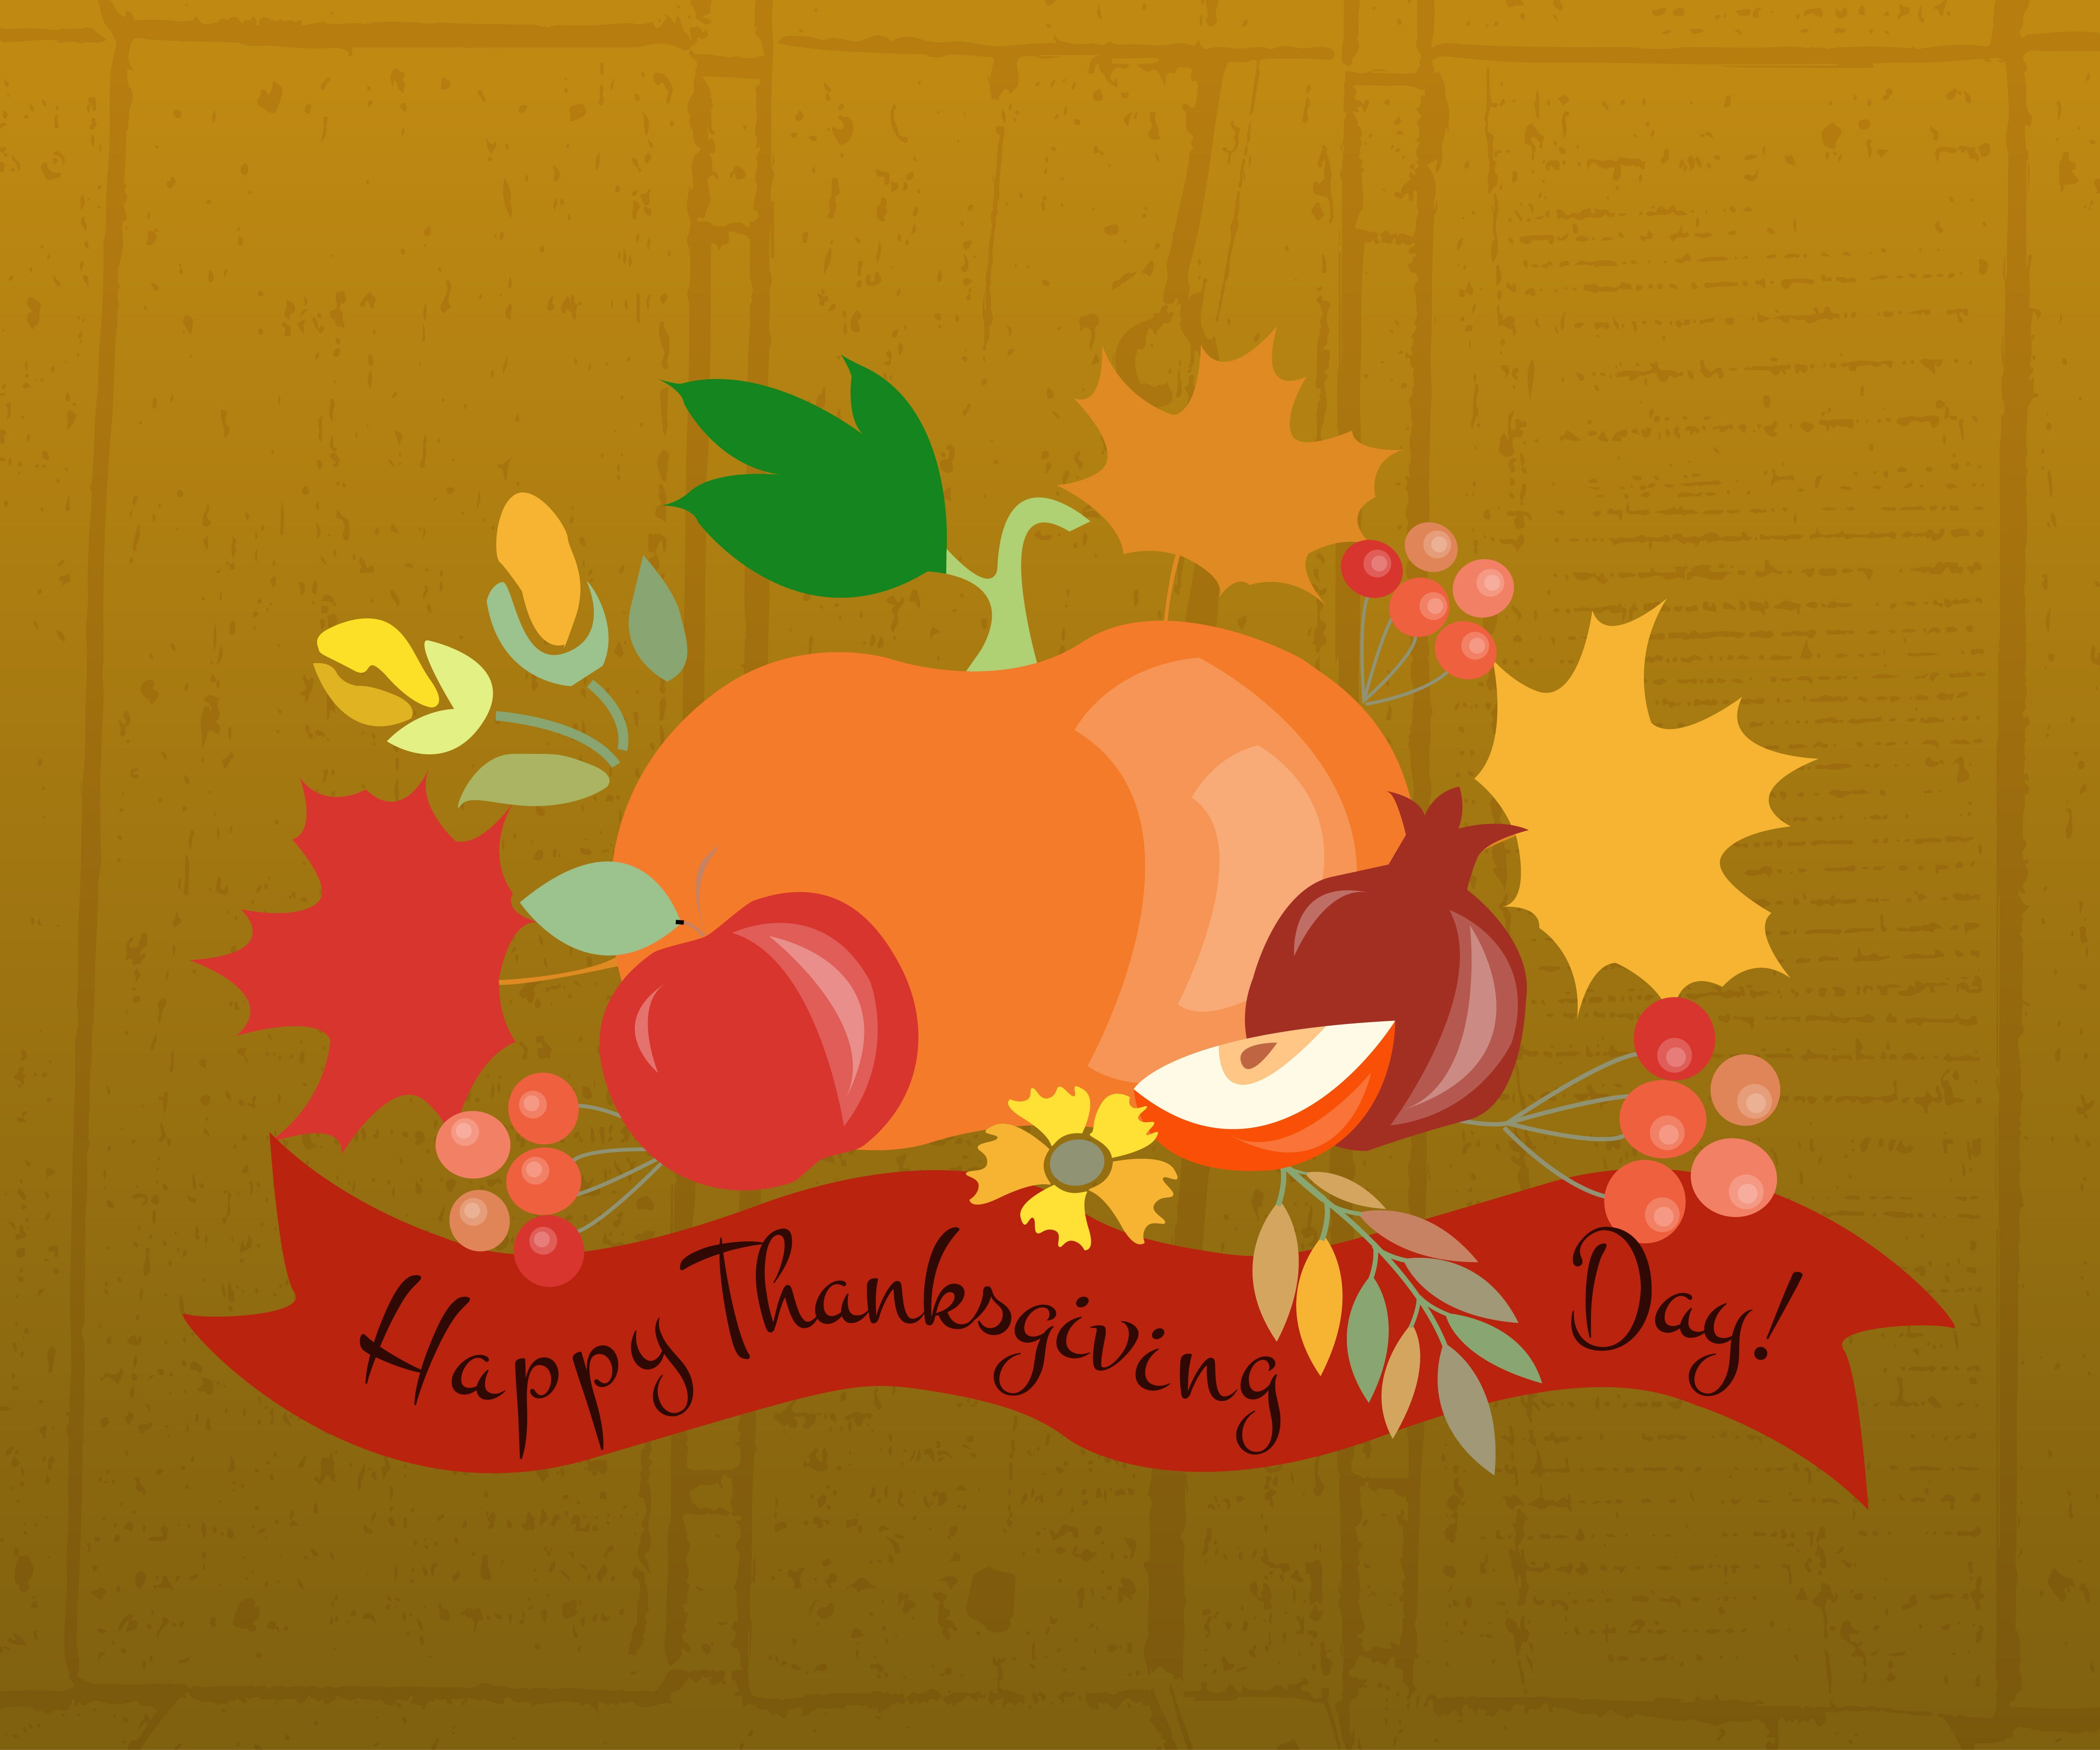 Happy Thanksgiving Card Thanksgiving Cards Happy Thanksgiving Pop Up Card Templates